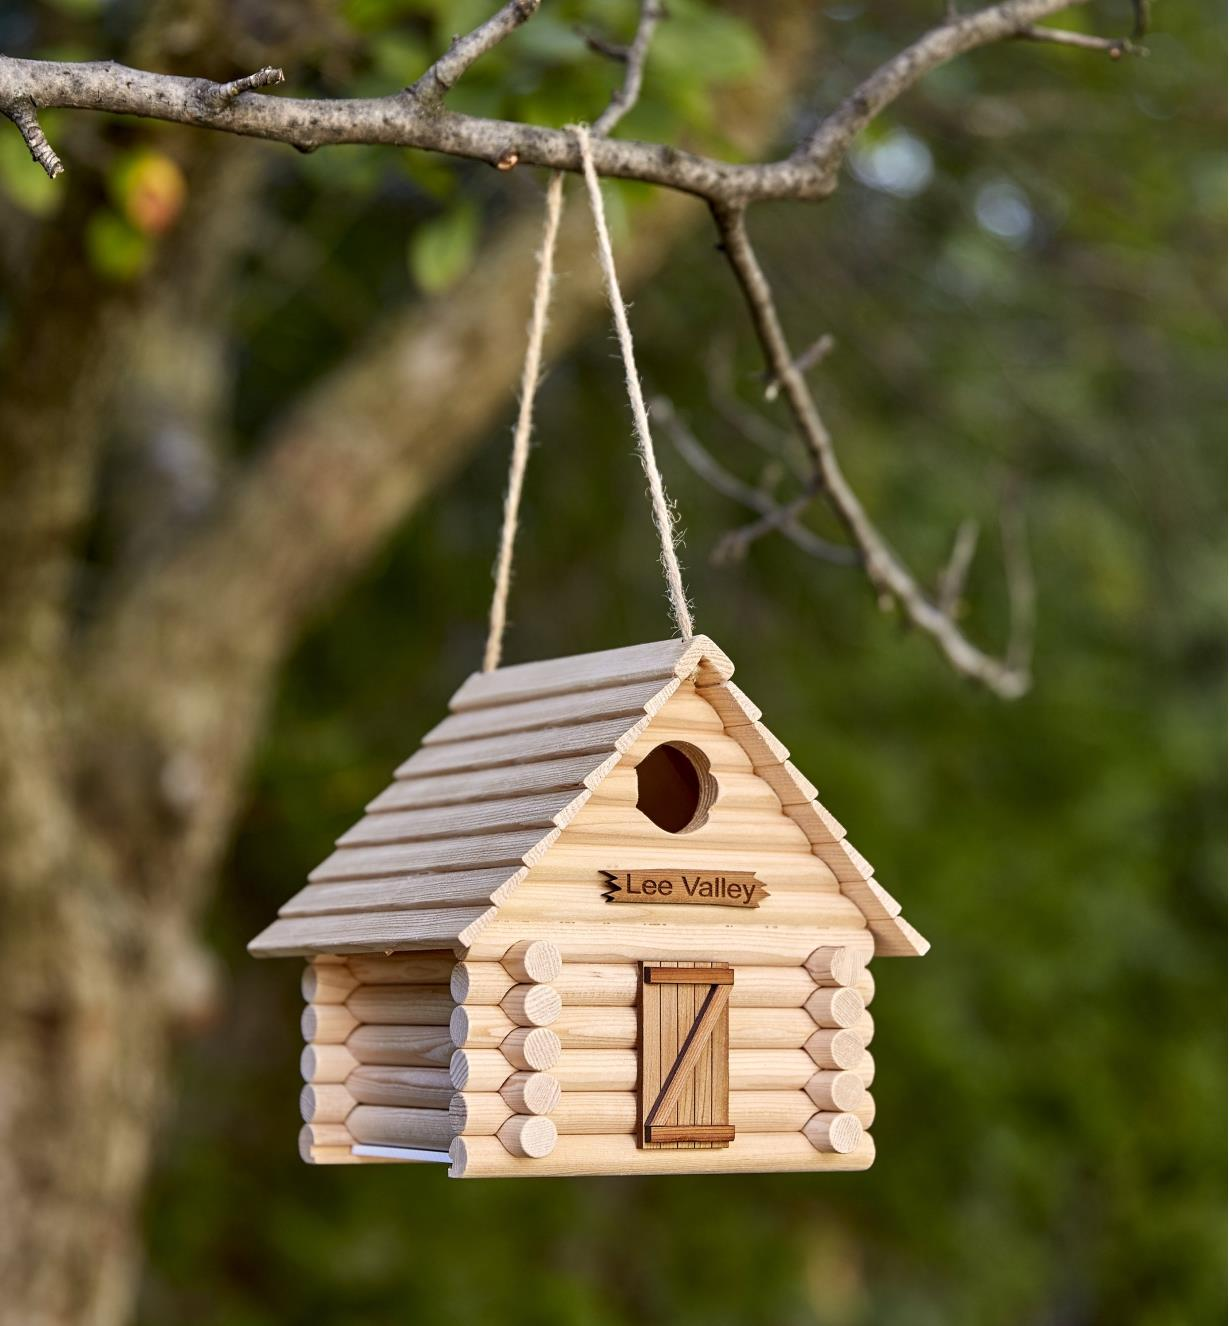 An assembled log cabin birdhouse hangs from a tree